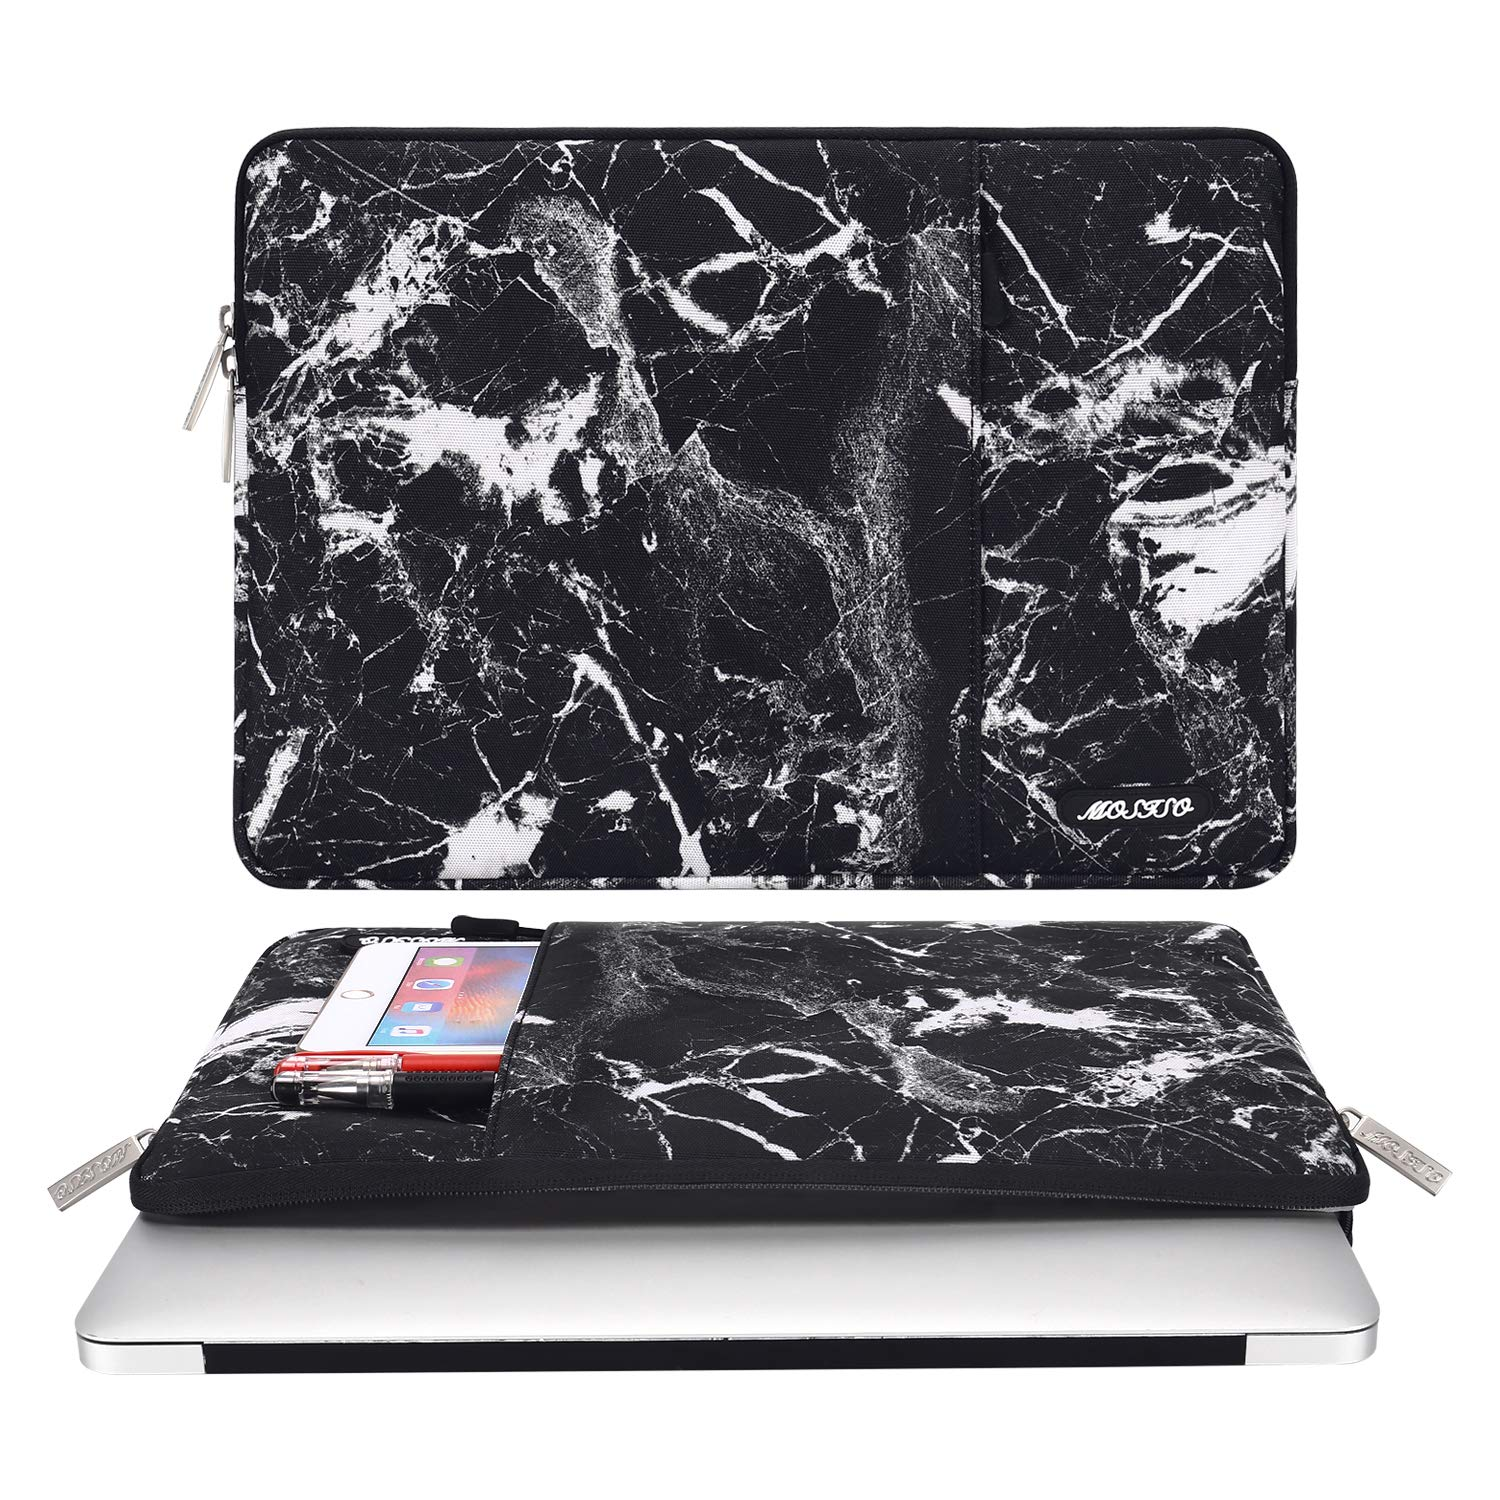 MOSISO Laptop Sleeve Bag Compatible 13-13.3 Inch MacBook Pro, MacBook Air, Notebook Computer, Vertical Style Water Repellent Polyester Protective Case Cover with Pocket, Black Marble by MOSISO (Image #2)